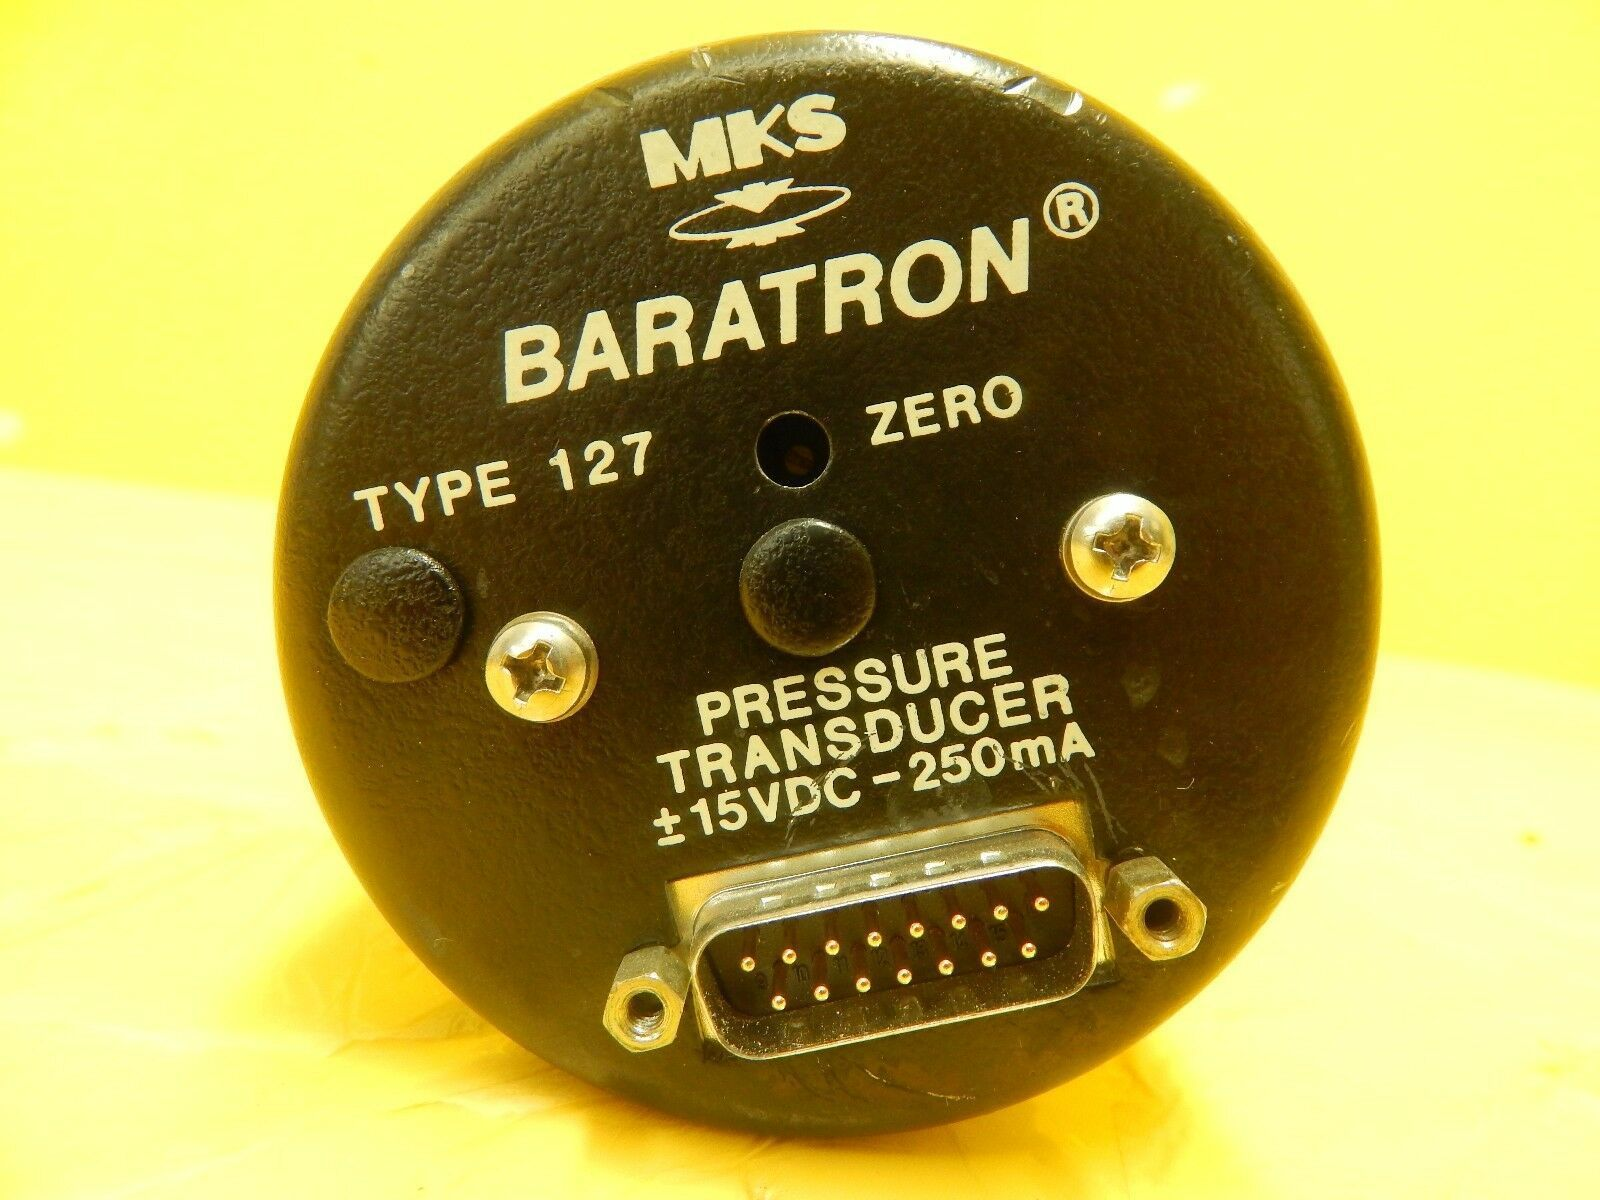 MKS Instruments 127A-11008 Baratron Pressure Transducer Type 127 Used Working